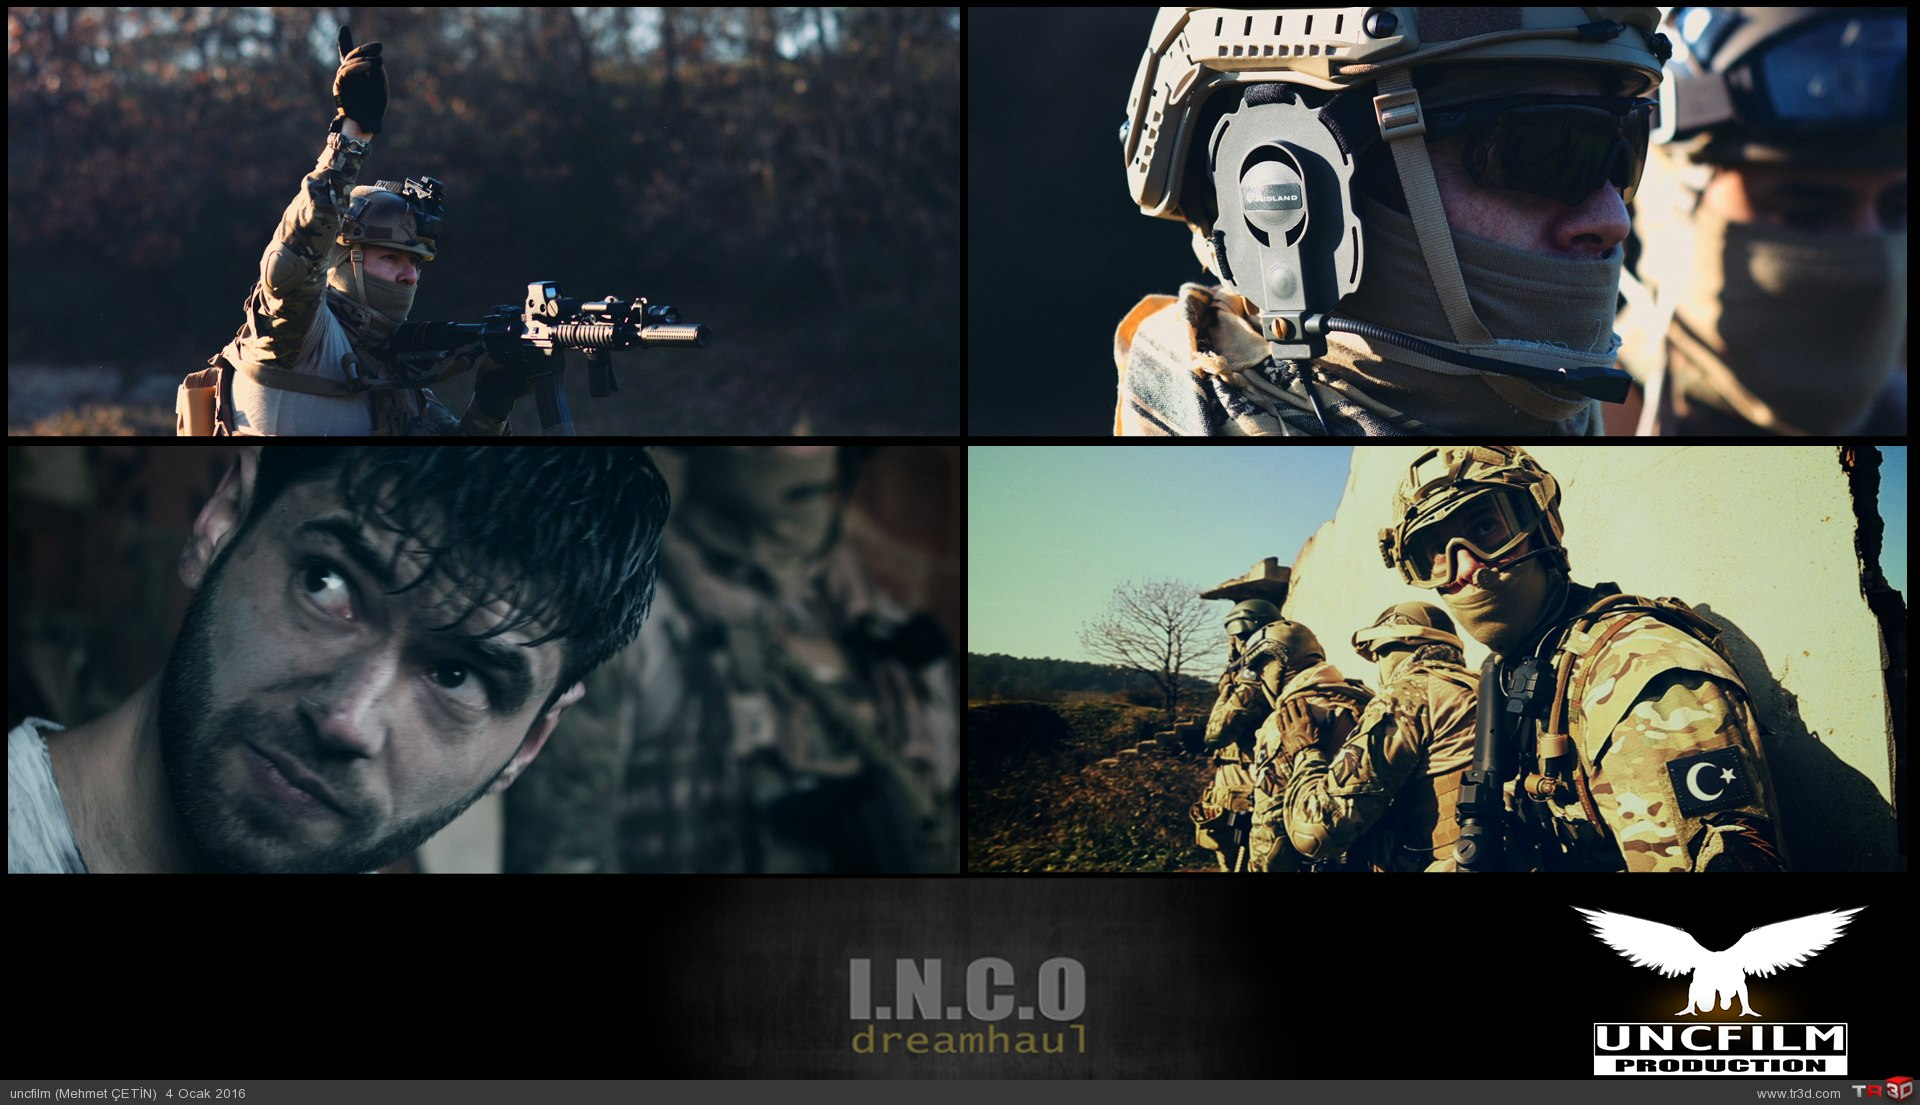 INCO Dreamhaul TV project